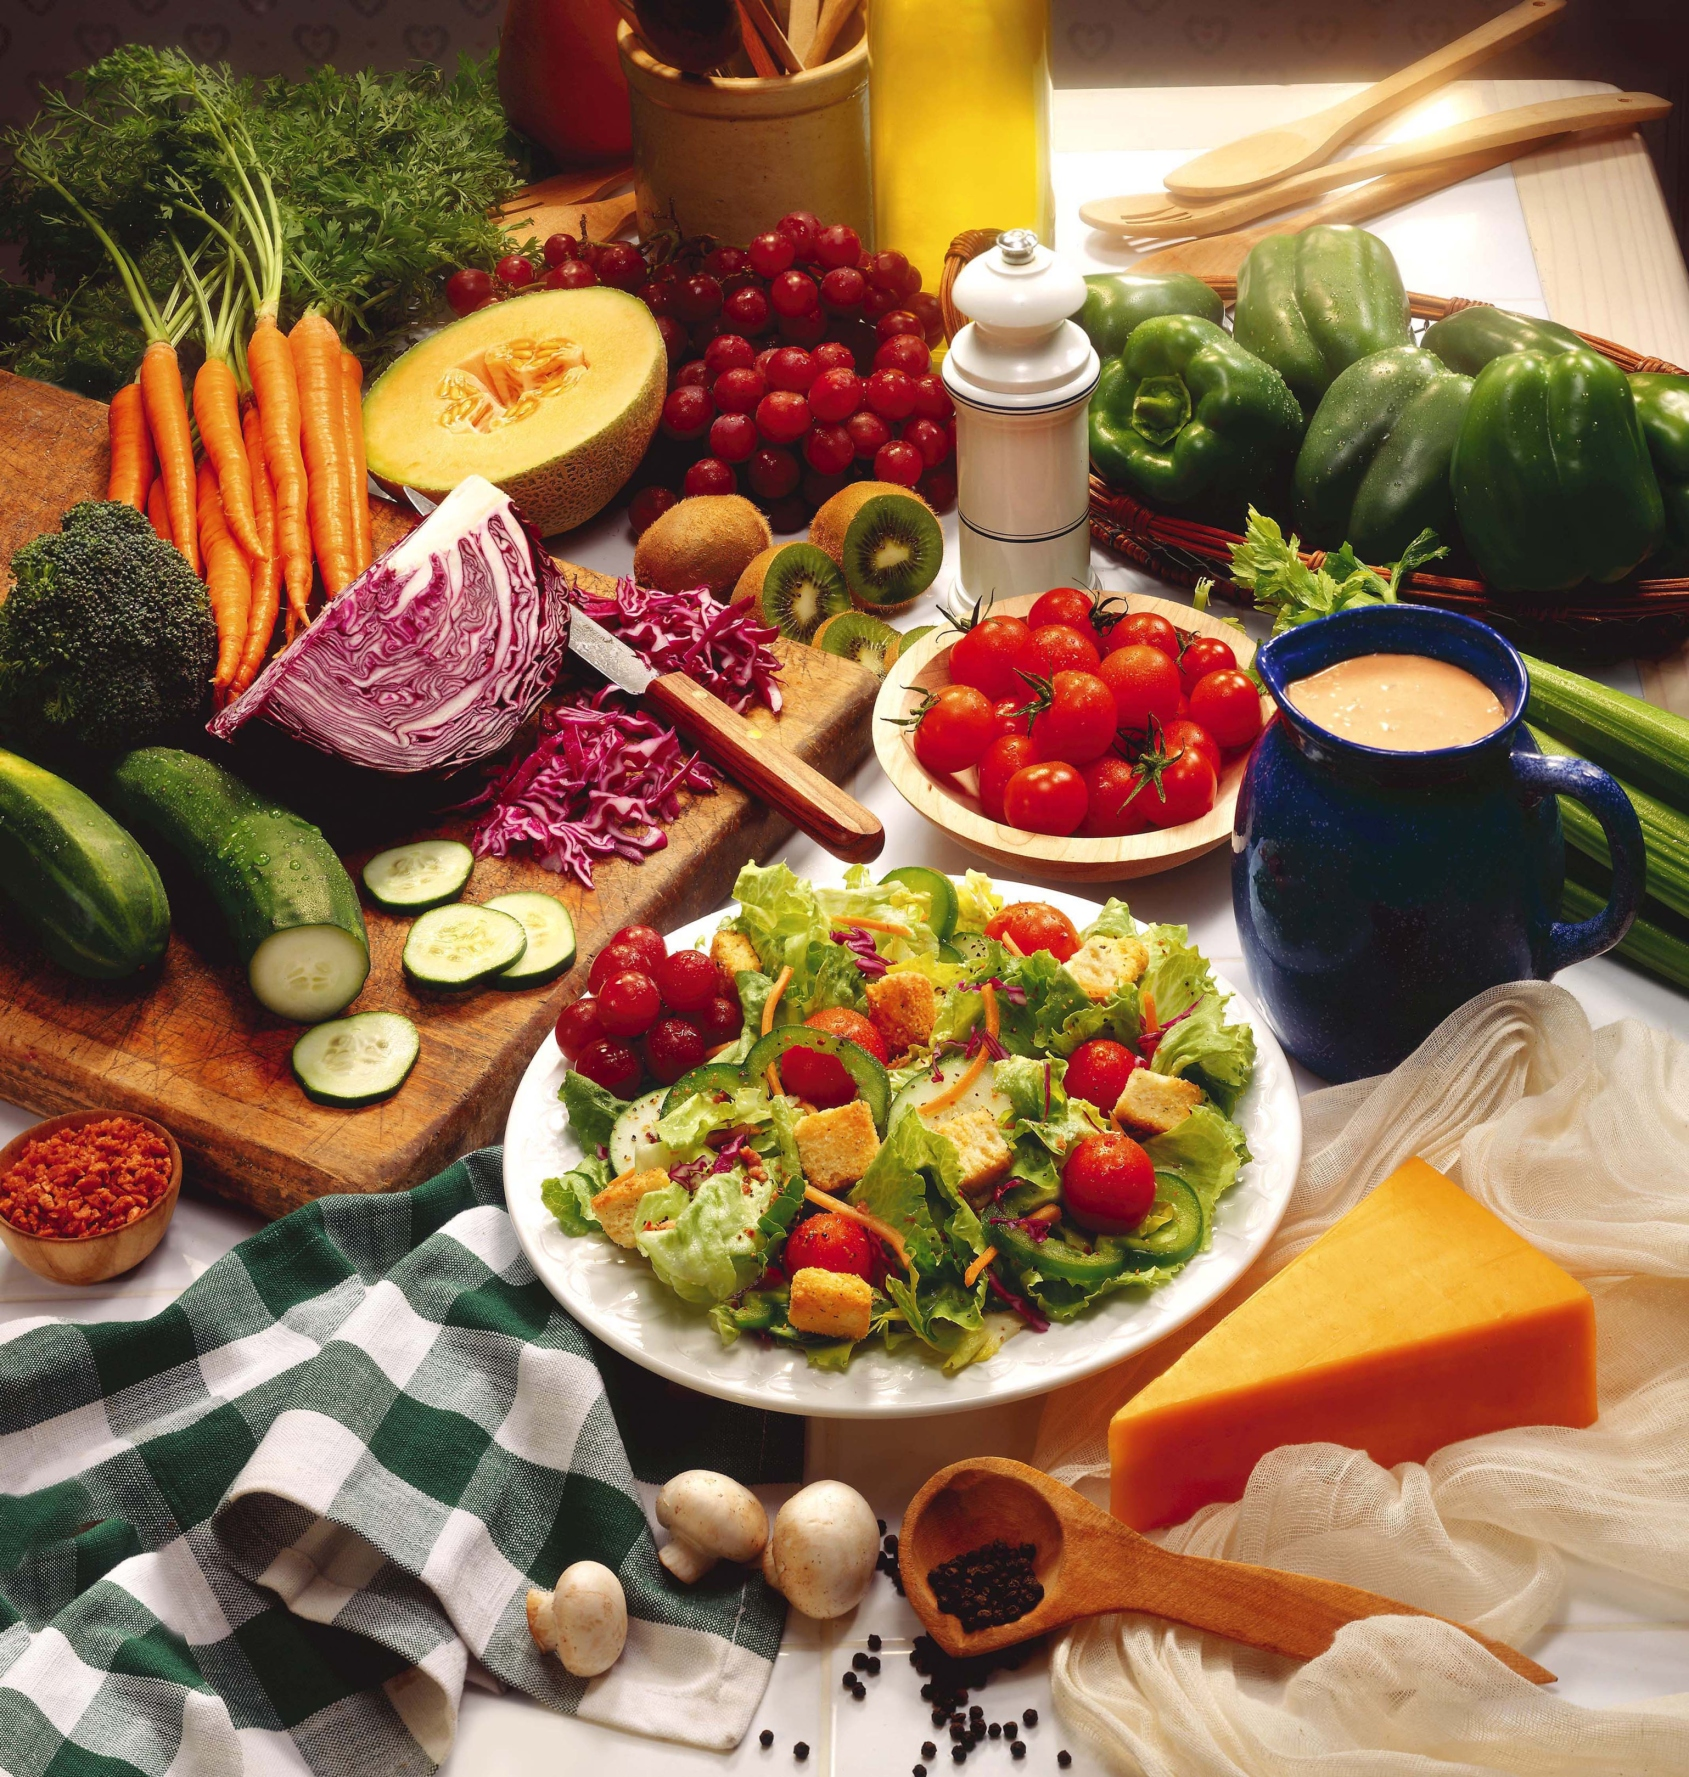 Eat healthy to maintain high nutrient levels in the body.